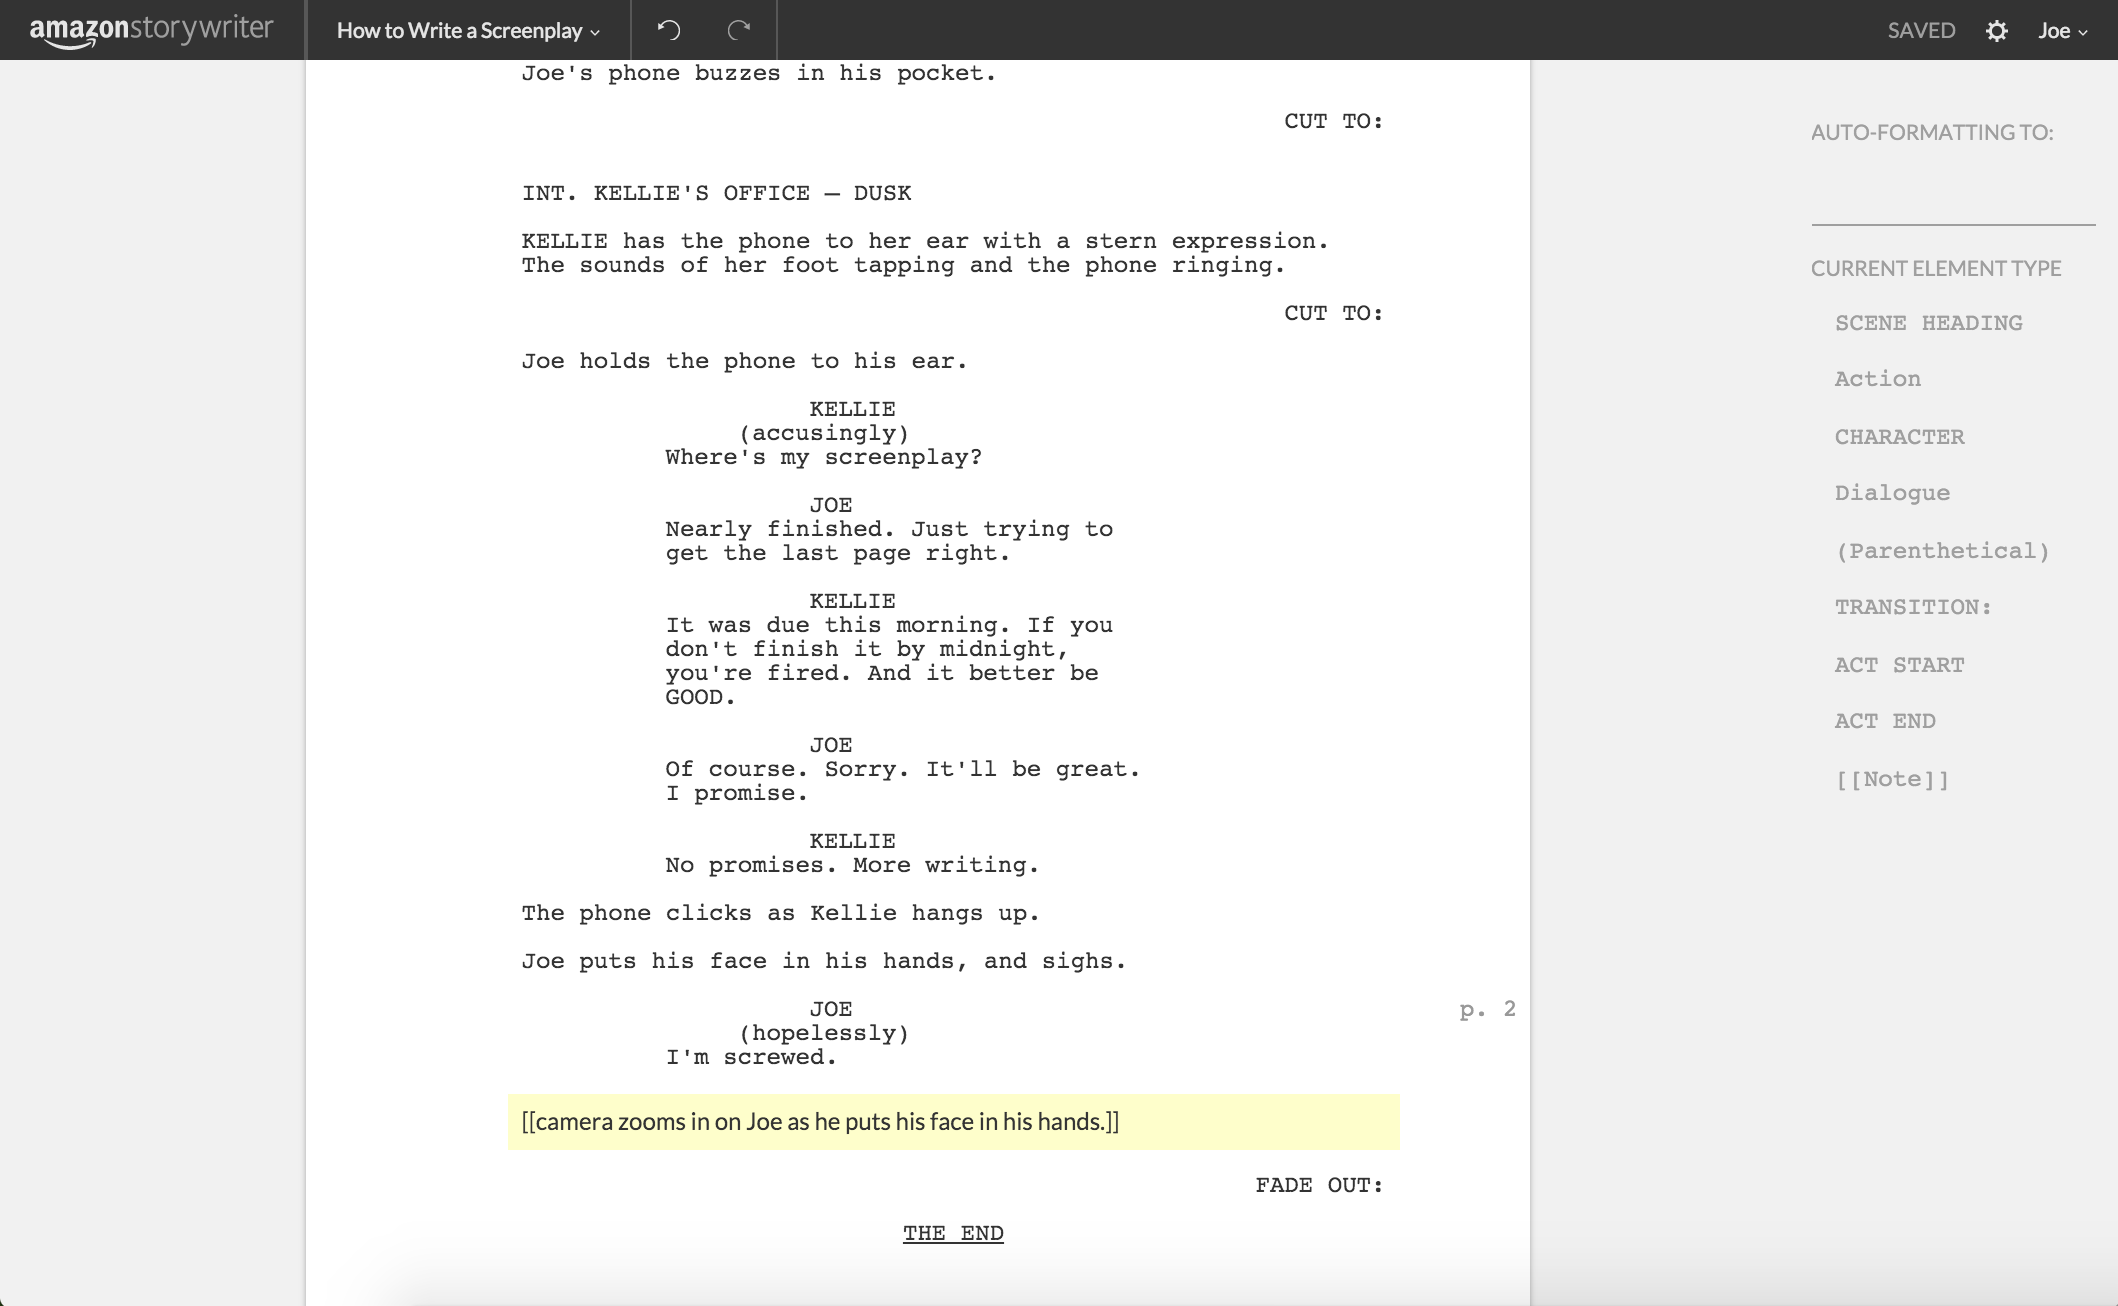 How To Write A Screenplay Using Amazon Storywriter - The Write ...